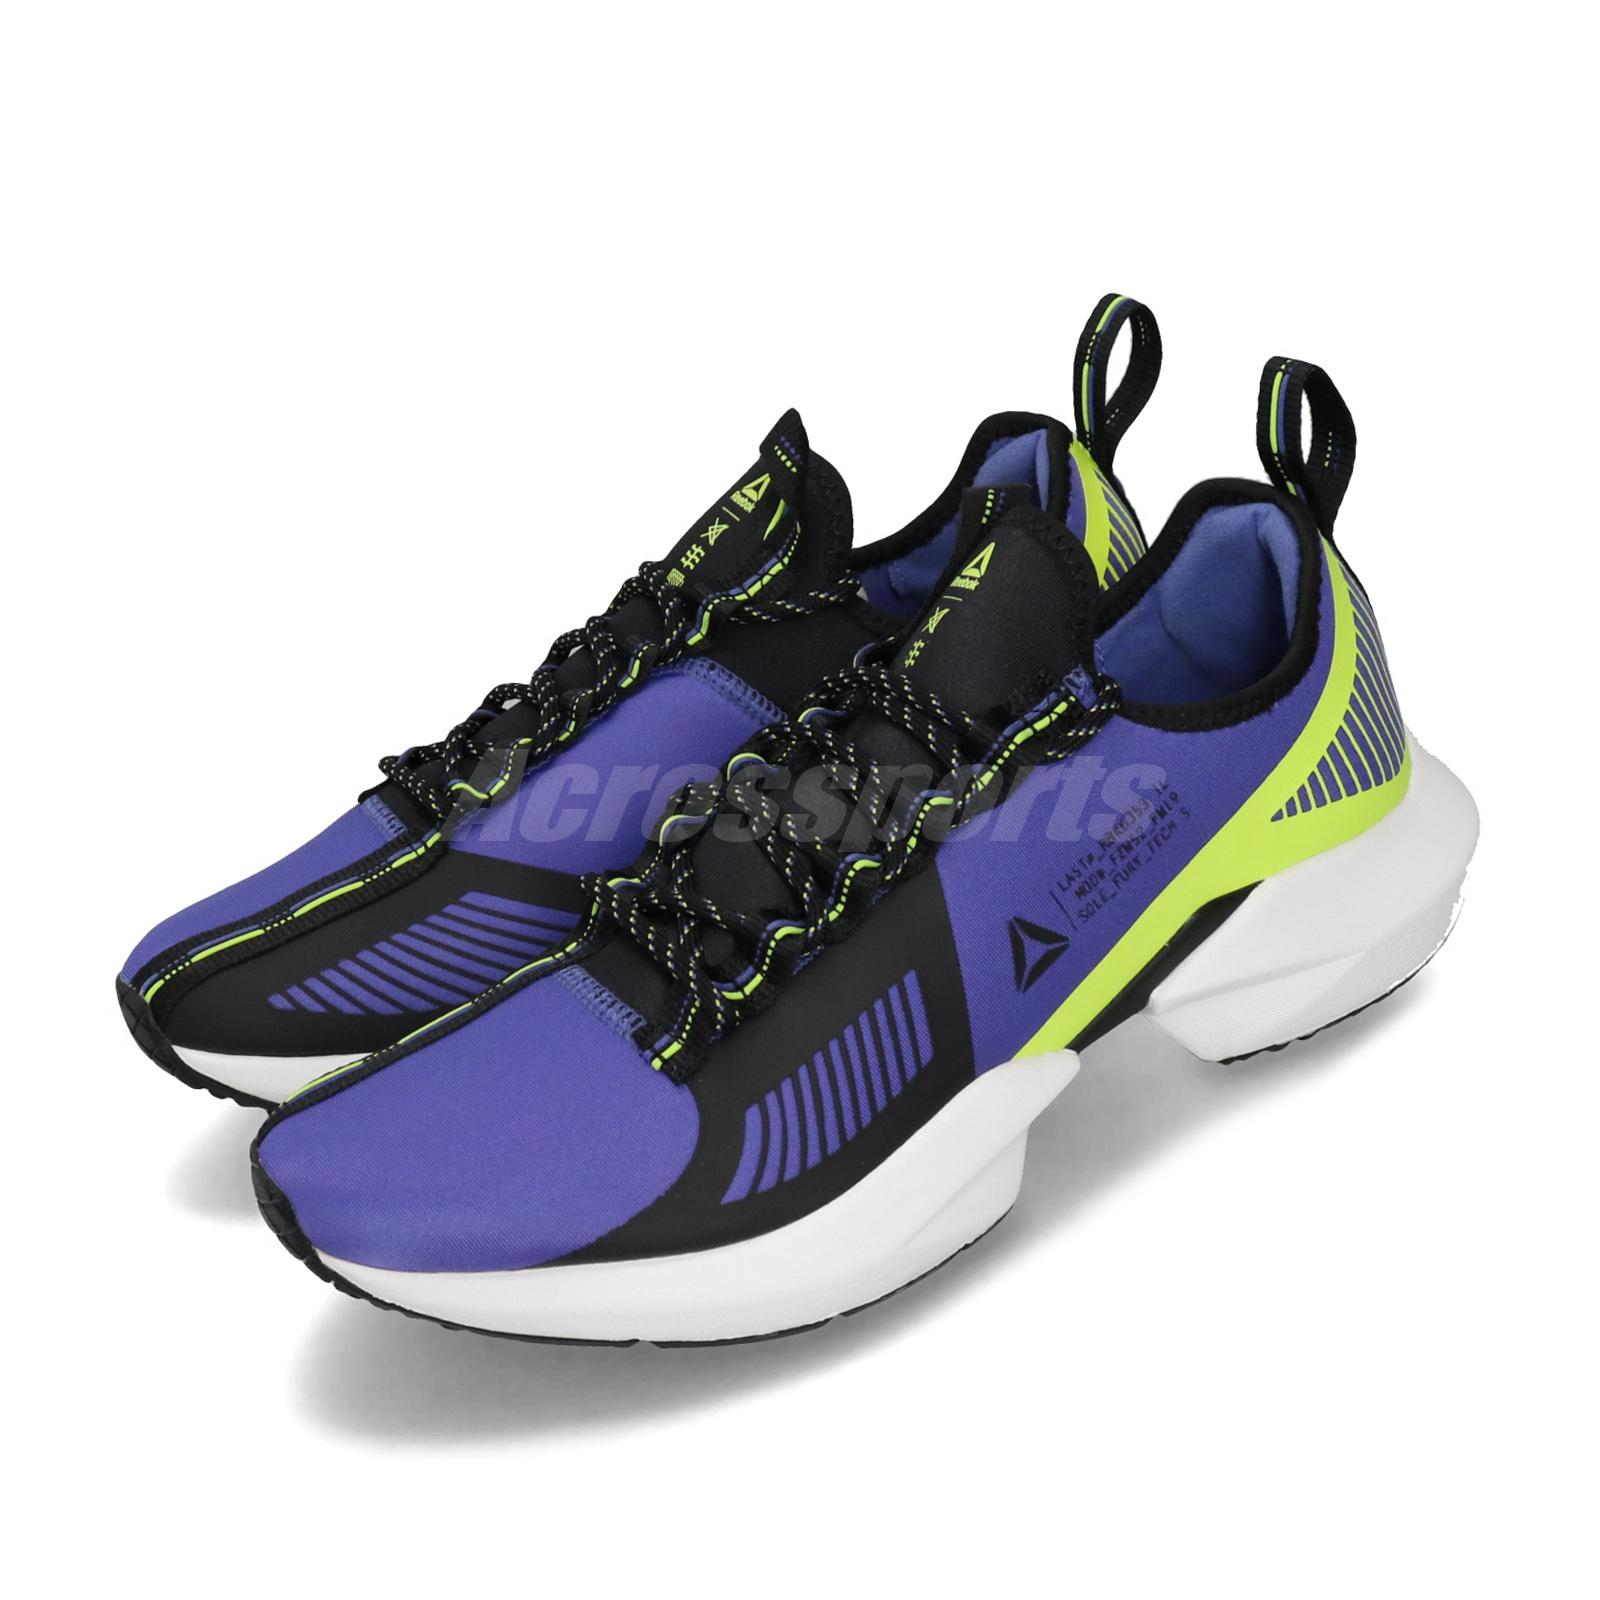 602bf0f5f8 Details about Reebok Sole Fury TS Purple Black Neon Lime Mens Running Shoes  DV9289